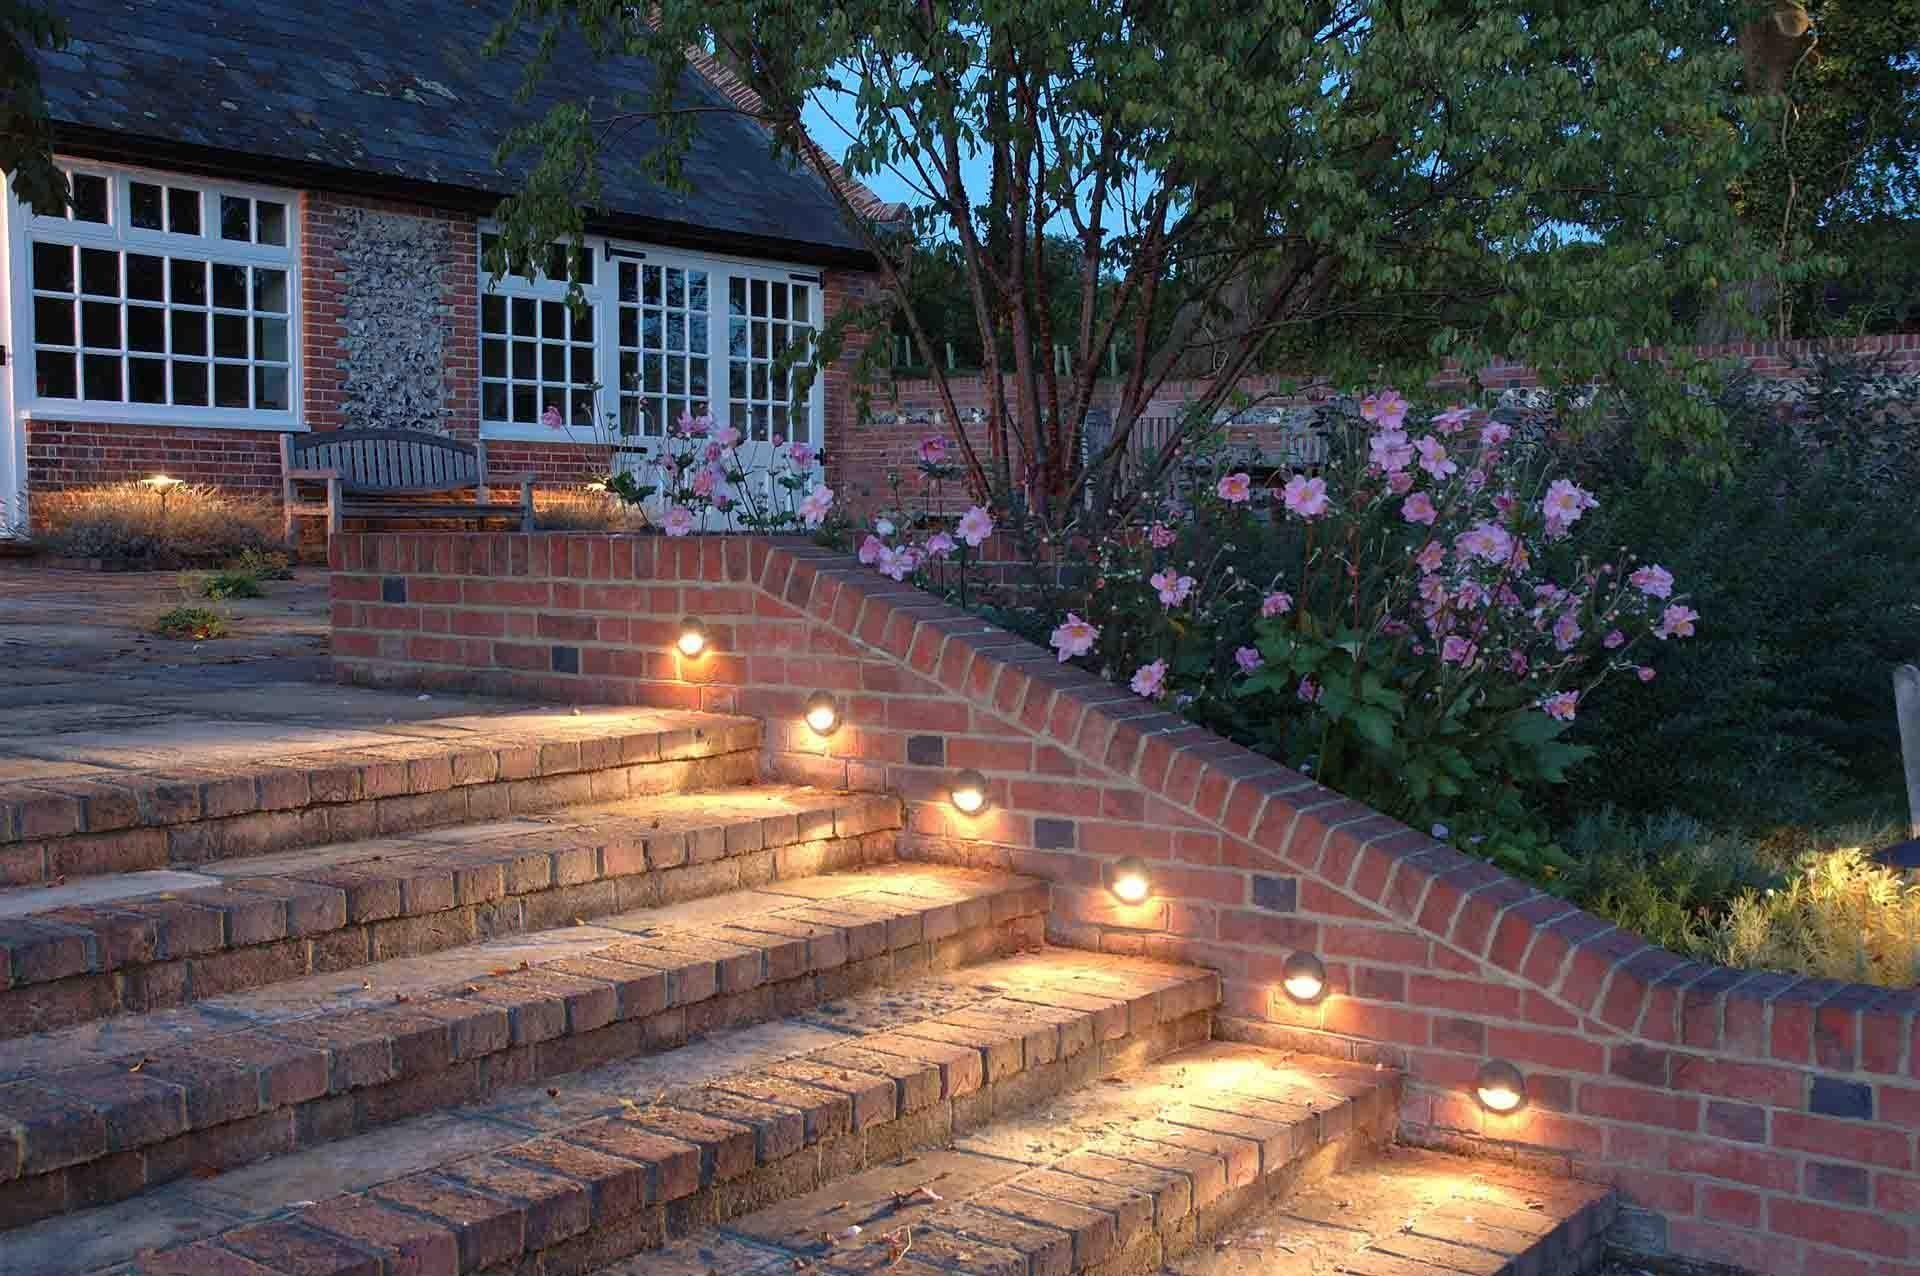 Led Outdoor Landscape Lighting – Proper Outdoor Lighting To Keep Regarding Outdoor Stone Wall Lighting (View 4 of 15)